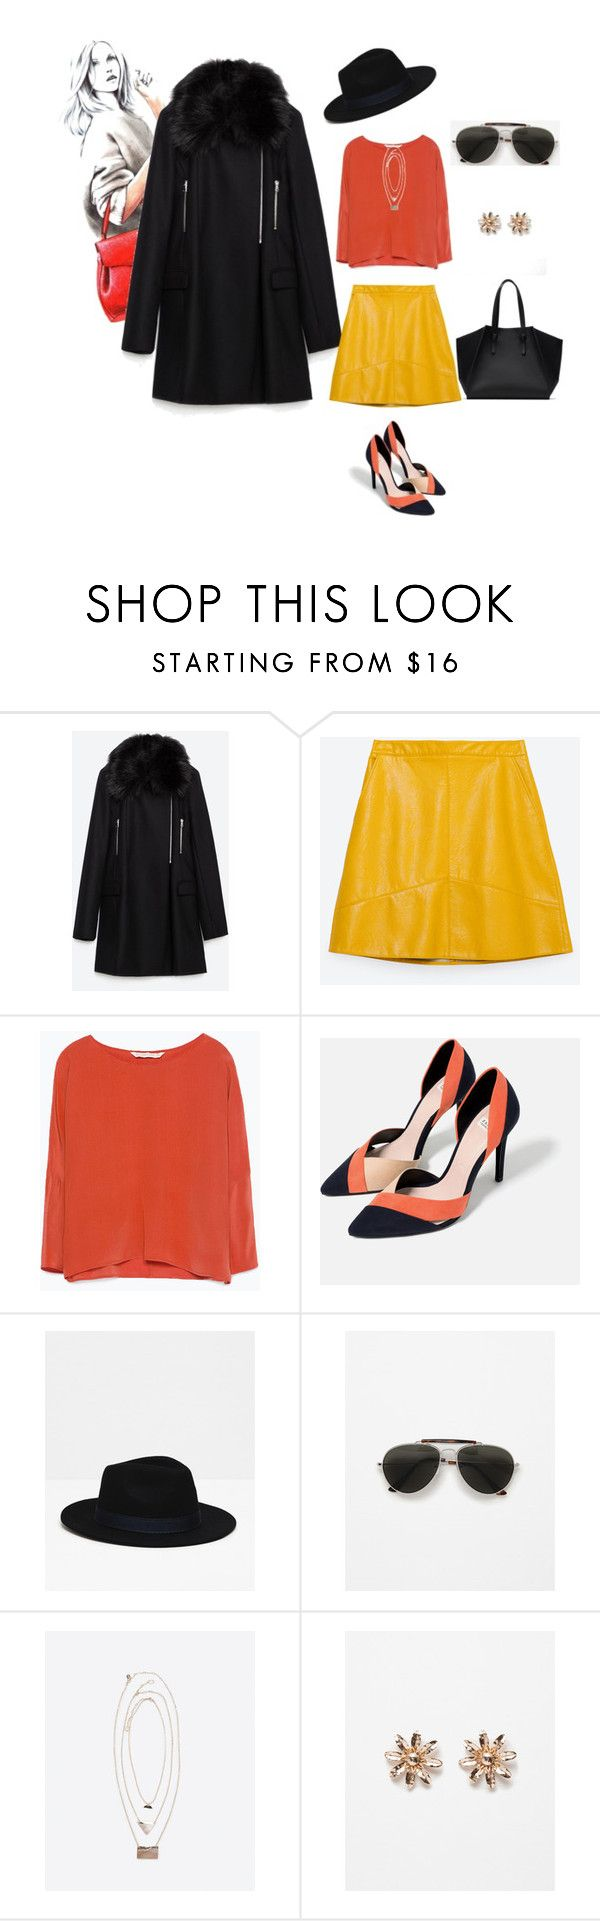 Everything From Zara by southindianmakeup1990 on Polyvore featuring Zara